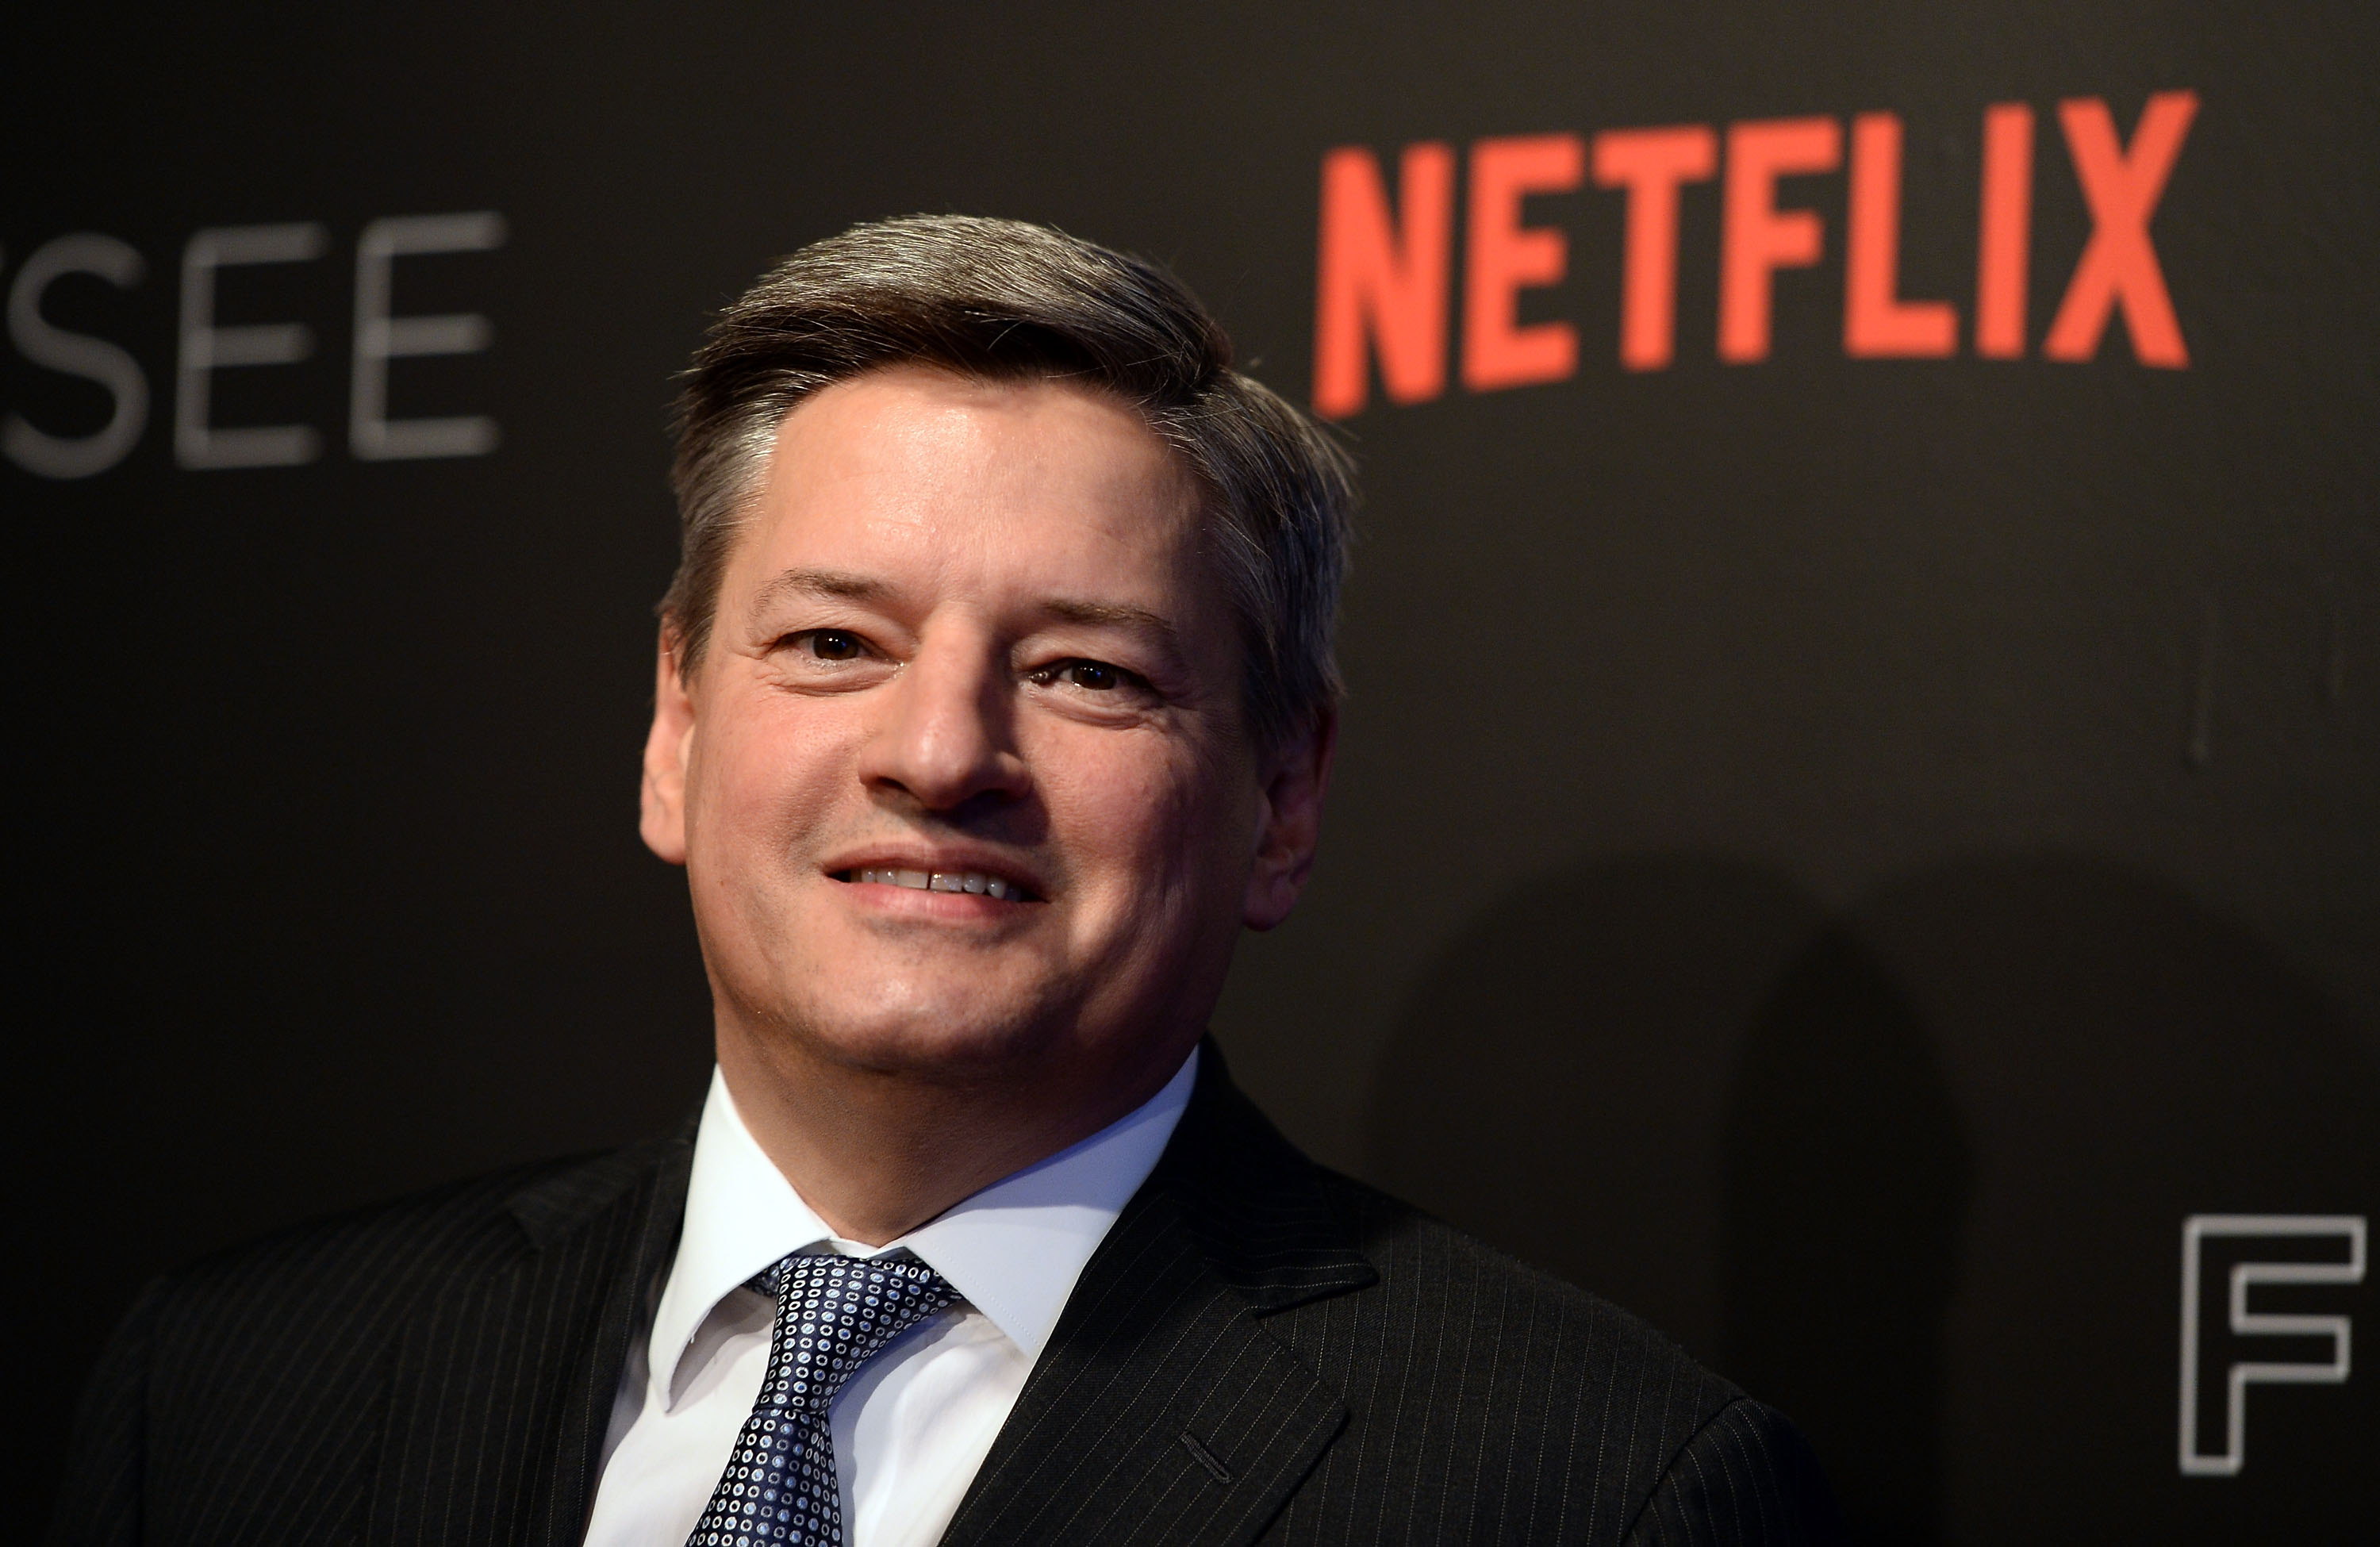 Netflix ups originals spend to 85% of content budget